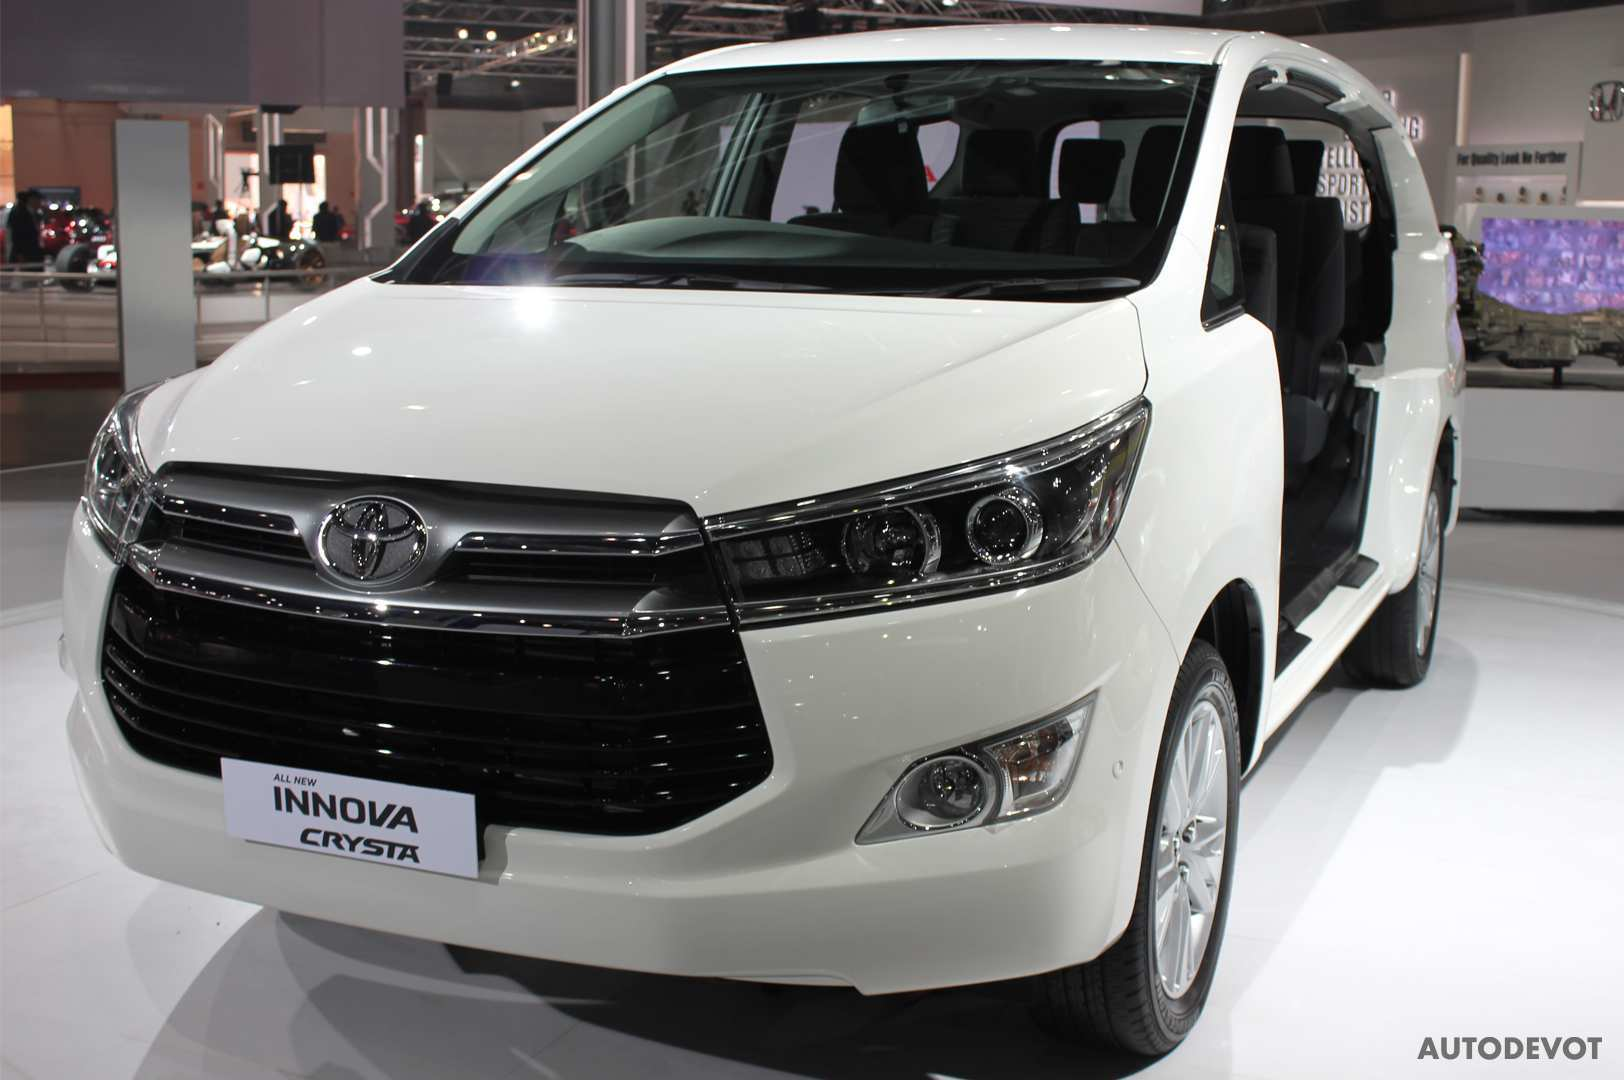 86 New Toyota Innova Crysta 2020 New Concept Research New for Toyota Innova Crysta 2020 New Concept